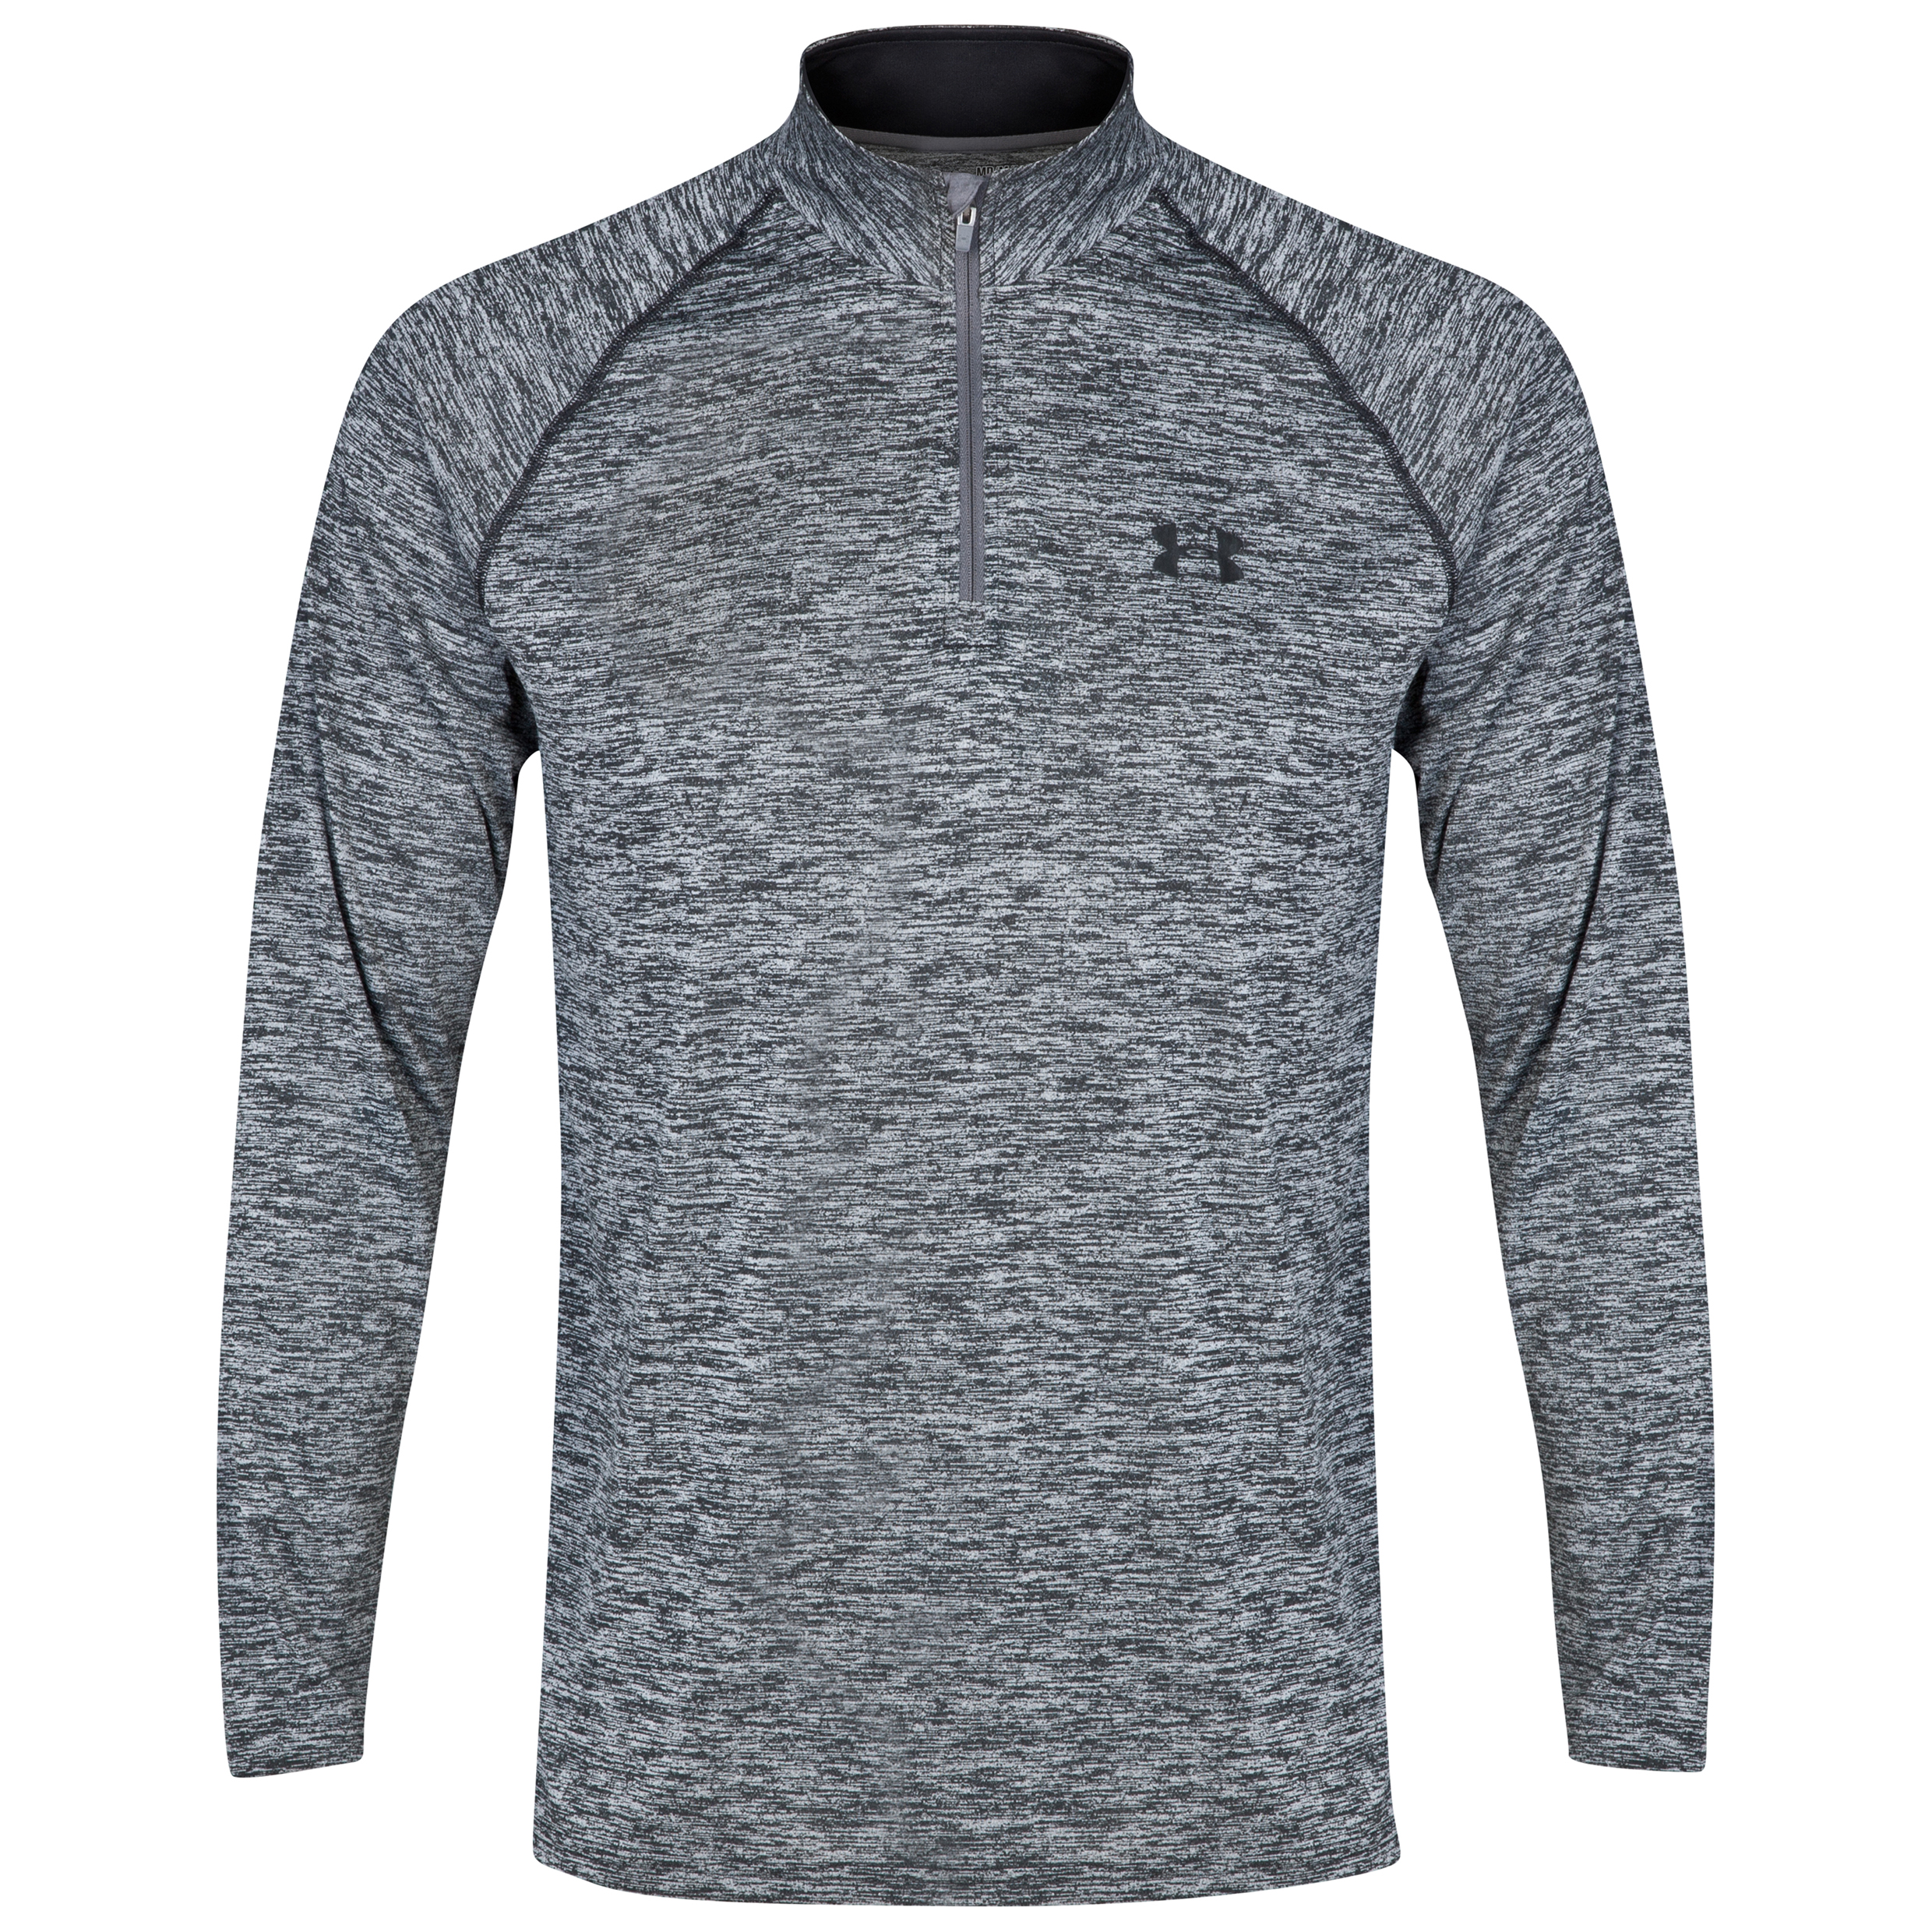 Under Armour Tech 1/4 Zip Top Black